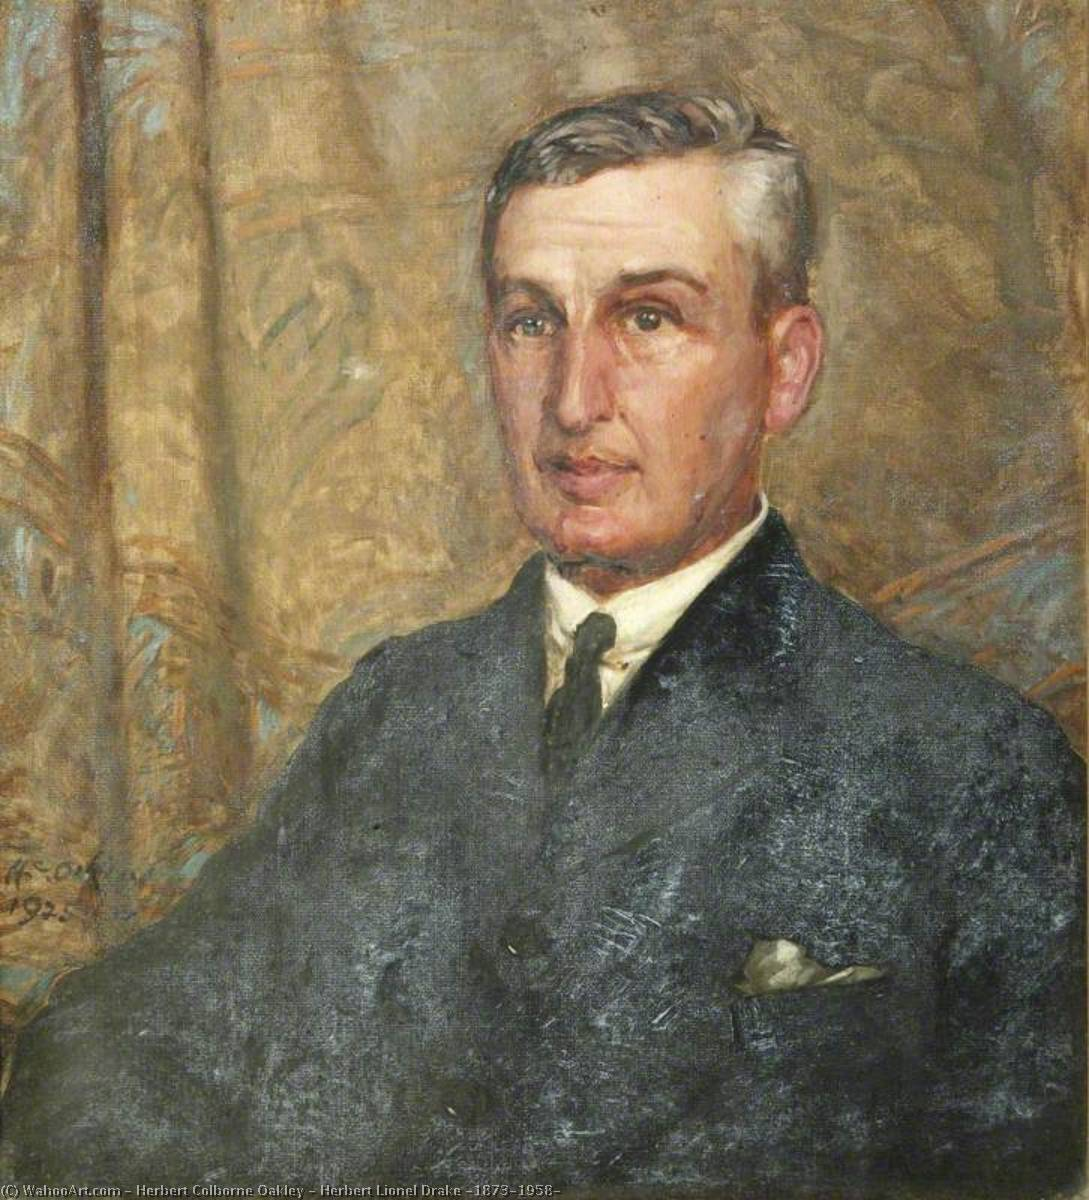 Herbert Lionel Drake (1873–1958), Oil On Canvas by Herbert Colborne Oakley